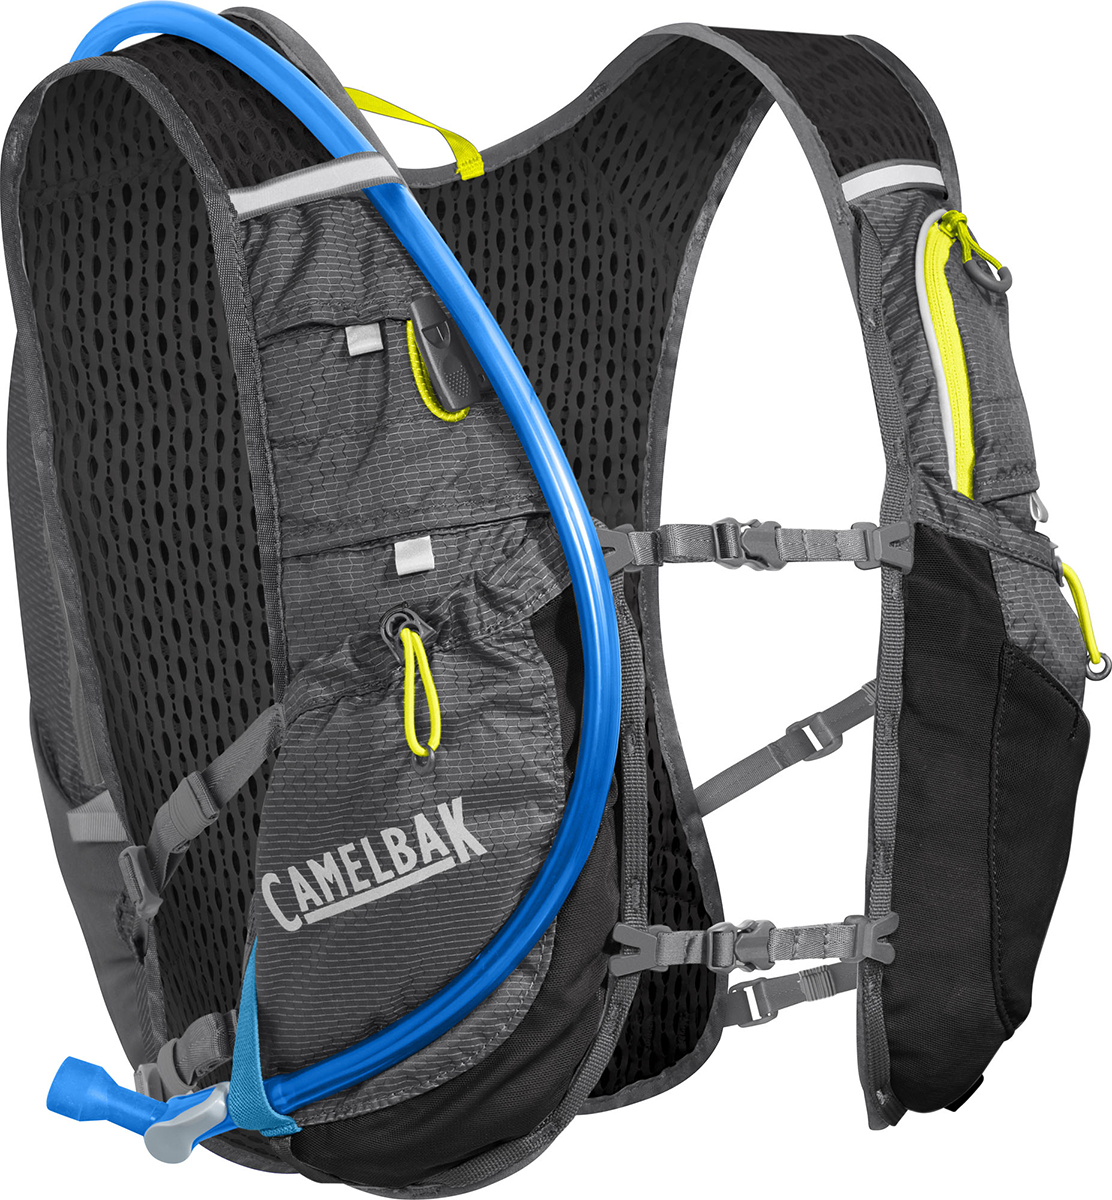 Camelbak Ultra 10 Vest with 2L Crux Reservoir | Veste